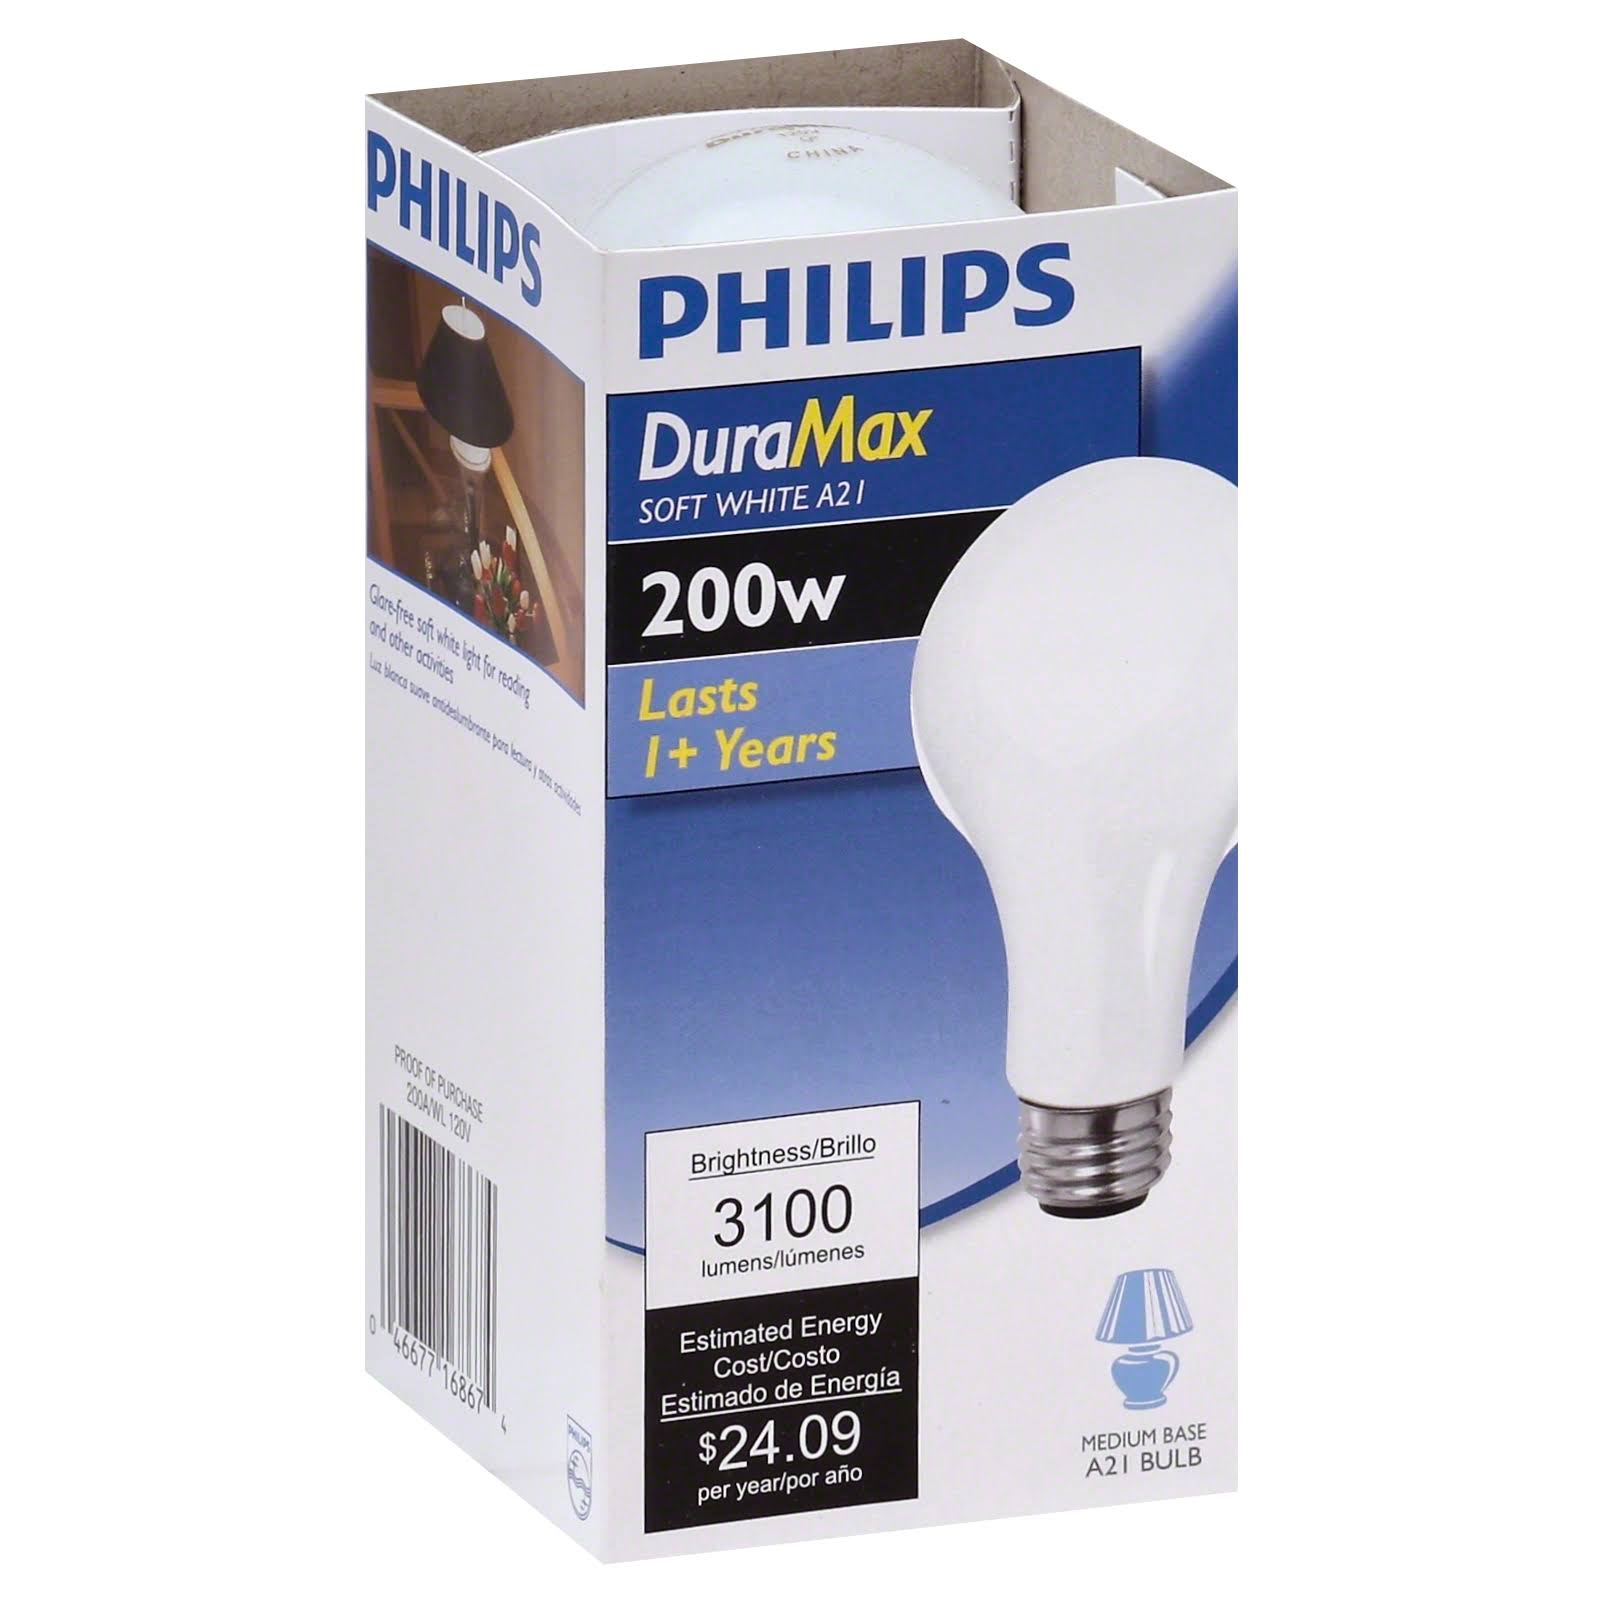 Philips Light Bulb - Soft White, 200w